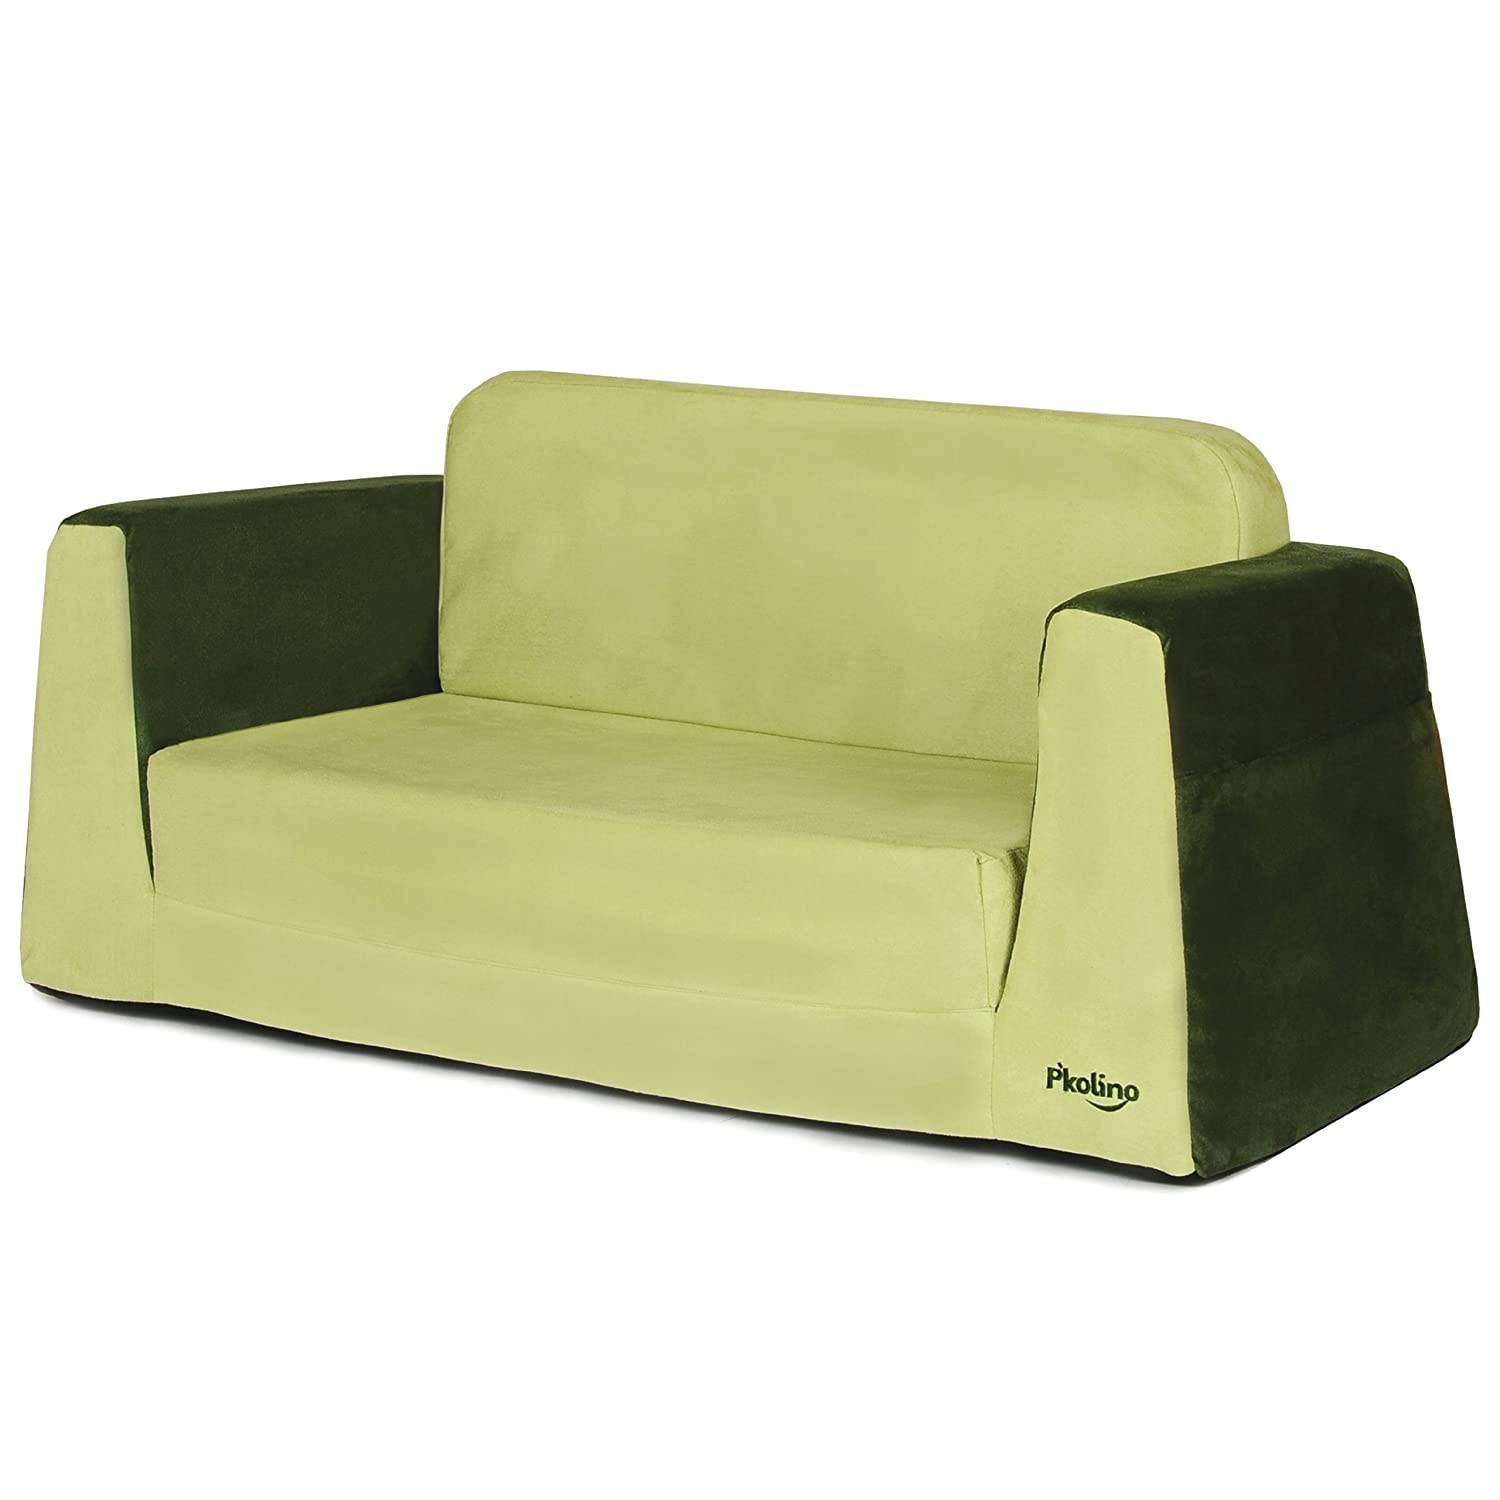 amazoncom pkolino little sofa lounge green discontinued by manufacturer baby - Toddler Sofa